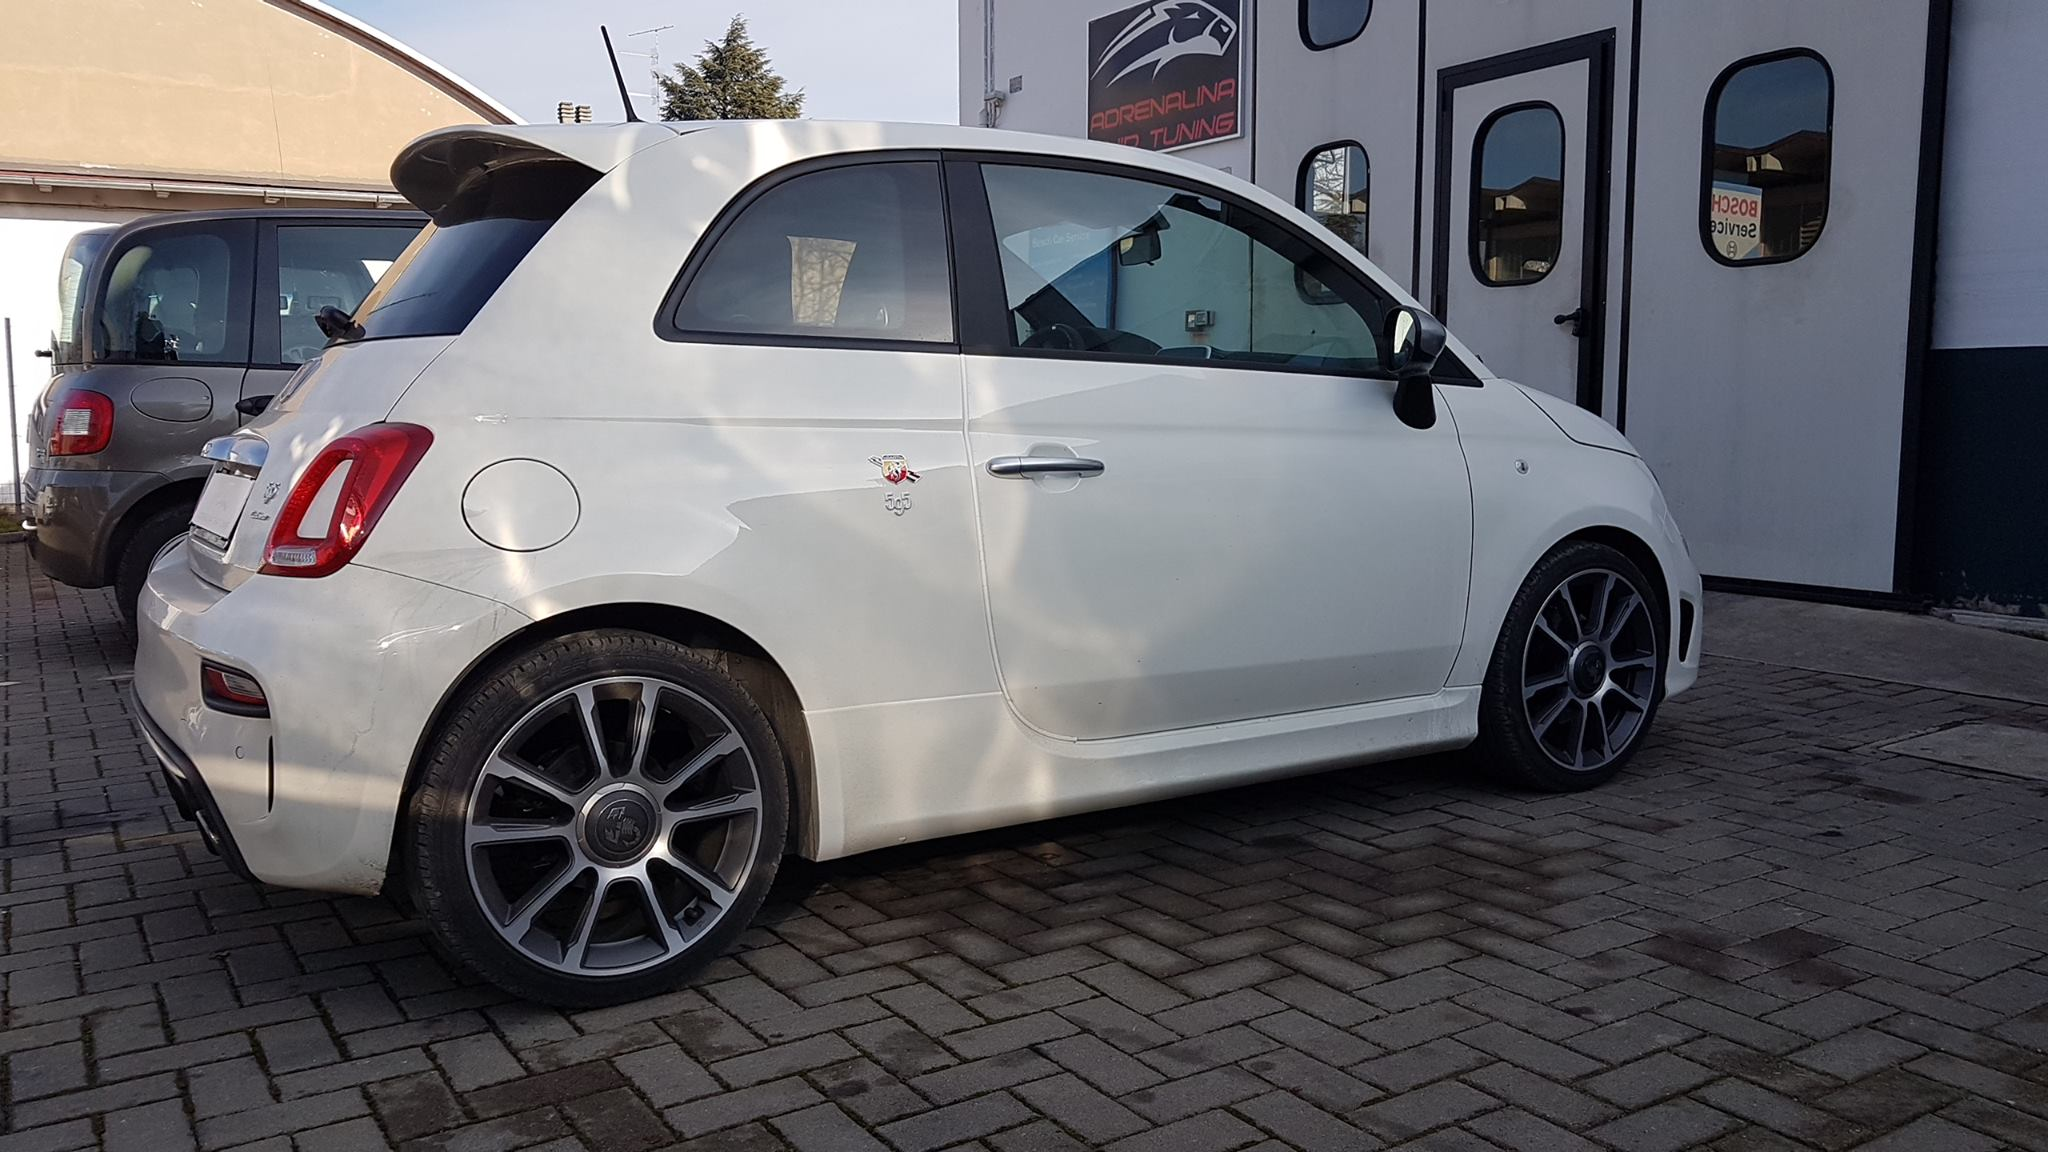 abarth 595 turismo 165cv adrenalina chip tuning. Black Bedroom Furniture Sets. Home Design Ideas